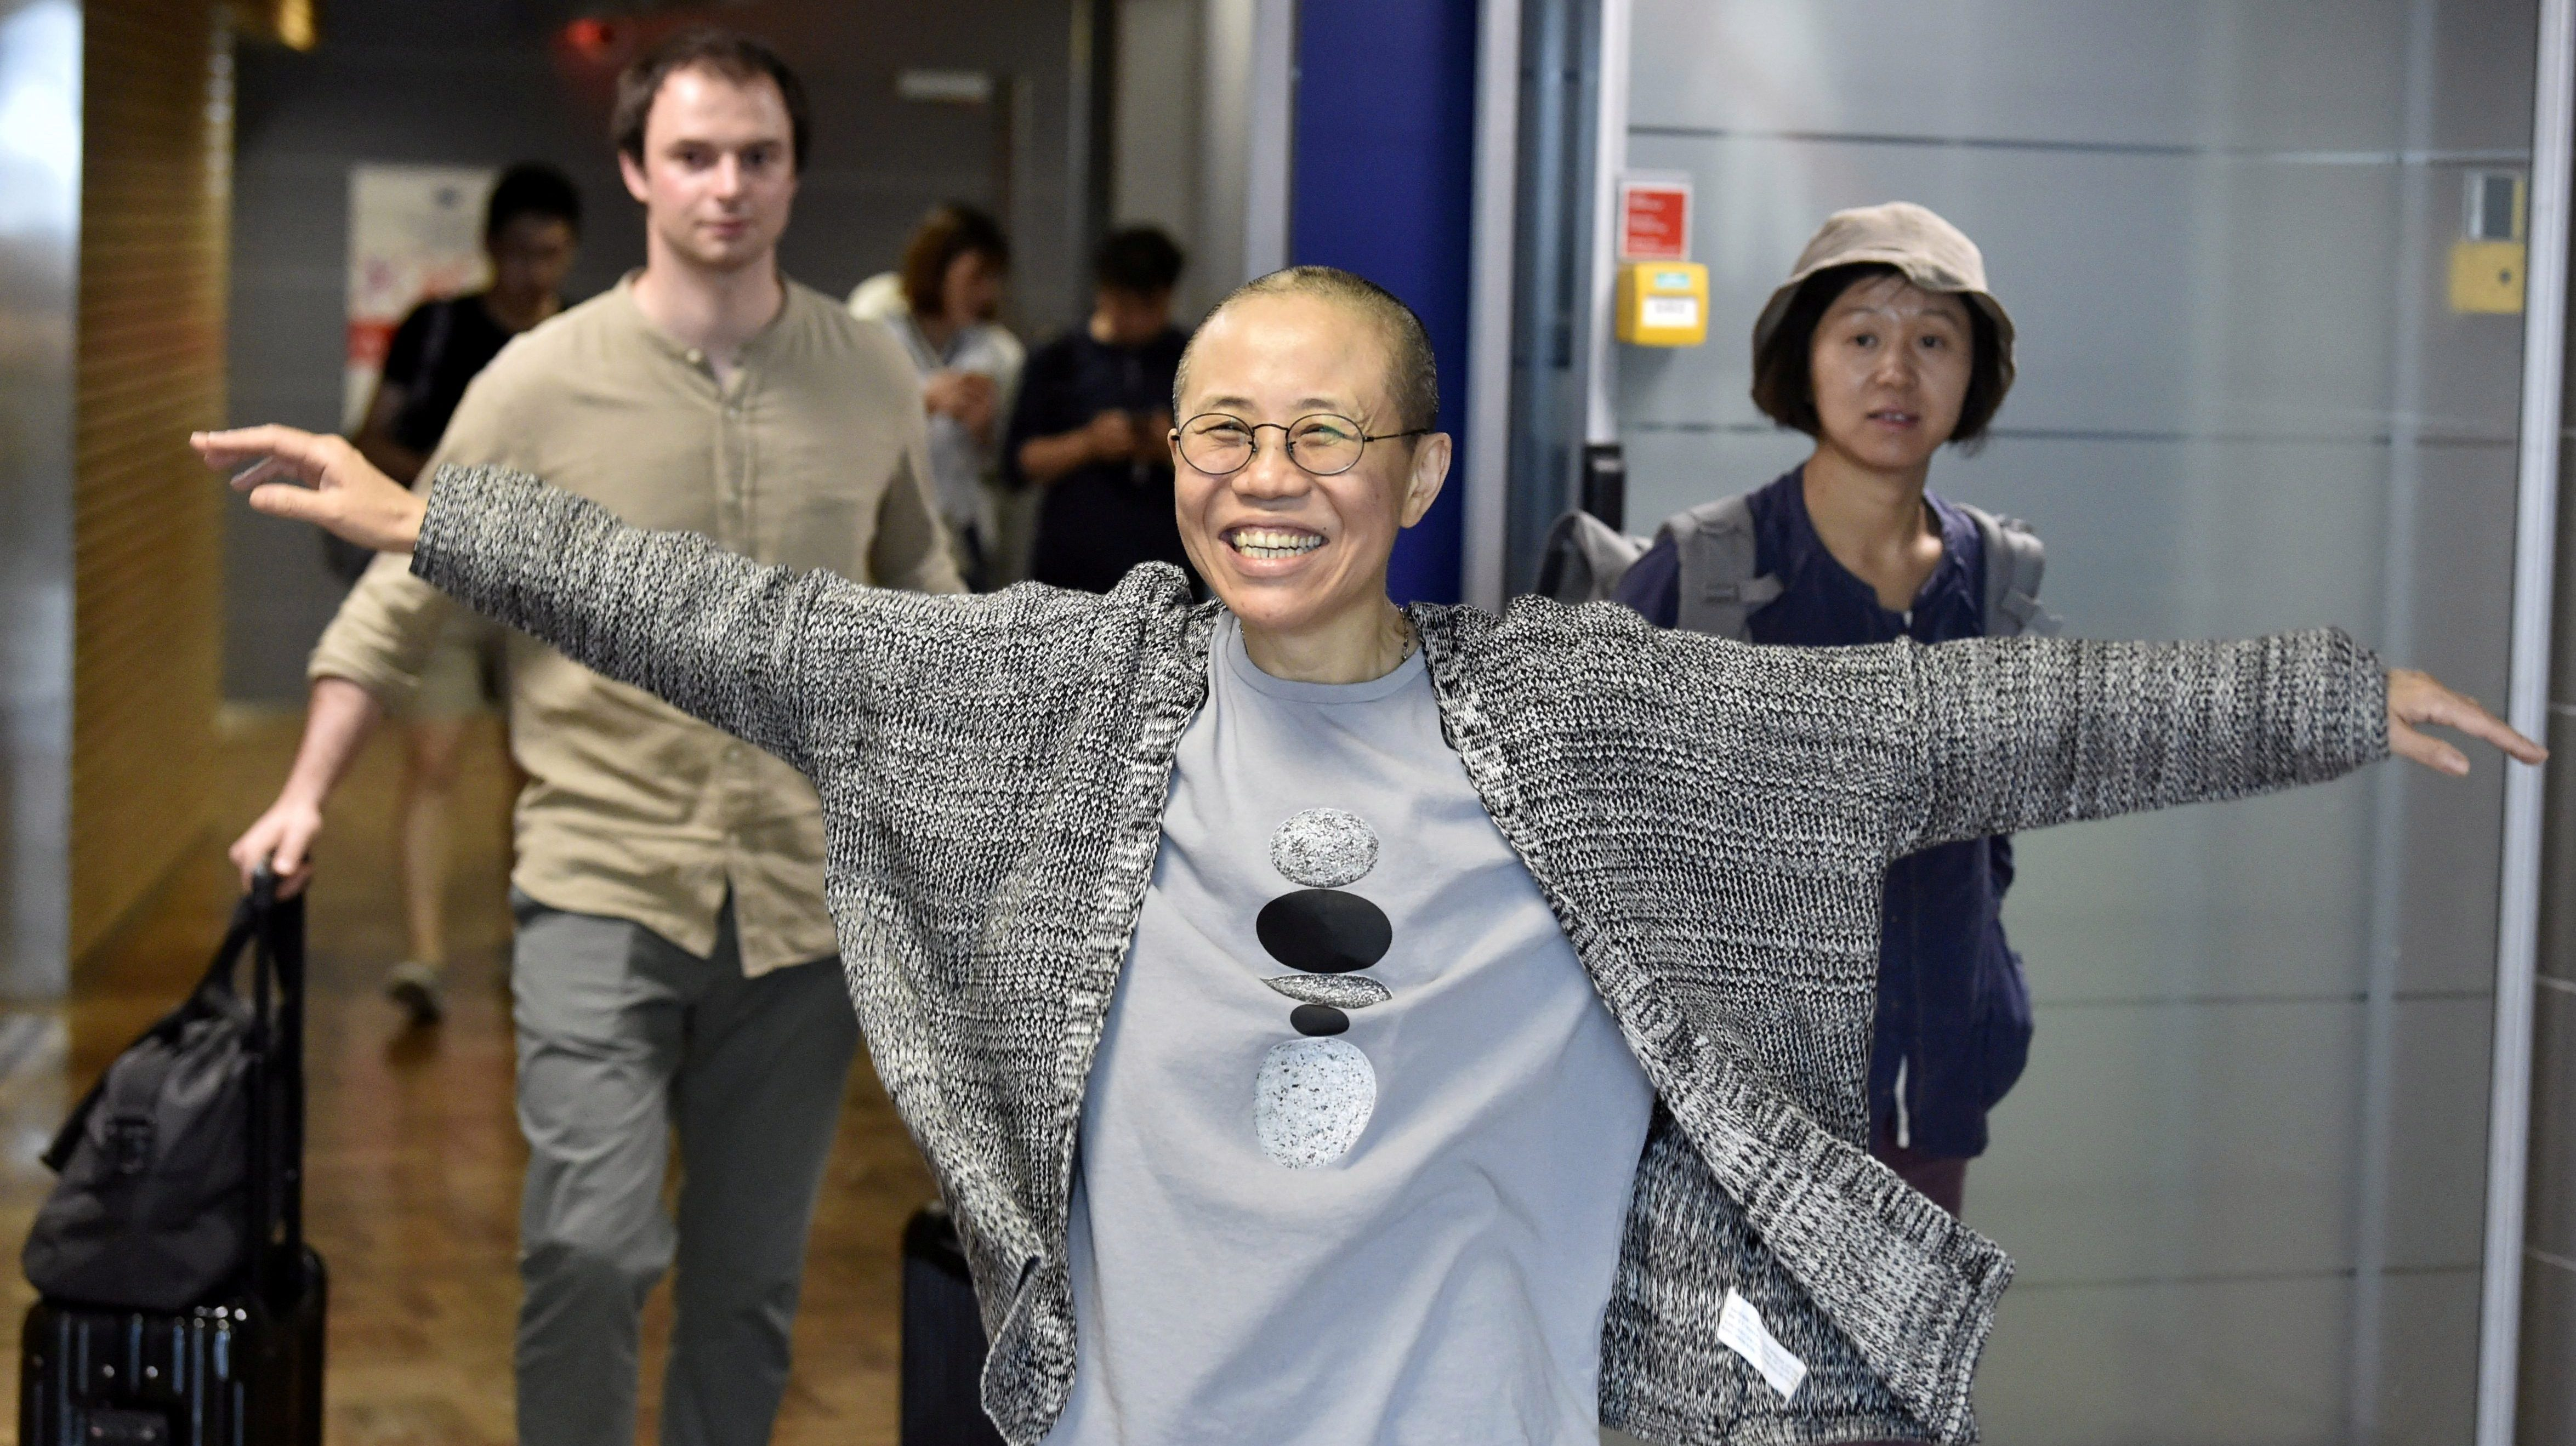 Liu Xia, the widow of Chinese Nobel Peace Prize-winning political dissident Liu Xiaobo, gestures as she arrives at the Helsinki International Airport in Vantaa, Finland, July 10, 2018. Lehtikuva/Jussi Nukari via REUTERS ATTENTION EDITORS - THIS IMAGE WAS PROVIDED BY A THIRD PARTY. NO THIRD PARTY SALES. NOT FOR USE BY REUTERS THIRD PARTY DISTRIBUTORS. FINLAND OUT. NO COMMERCIAL OR EDITORIAL SALES IN FINLAND.     TPX IMAGES OF THE DAY - RC127F47BF20